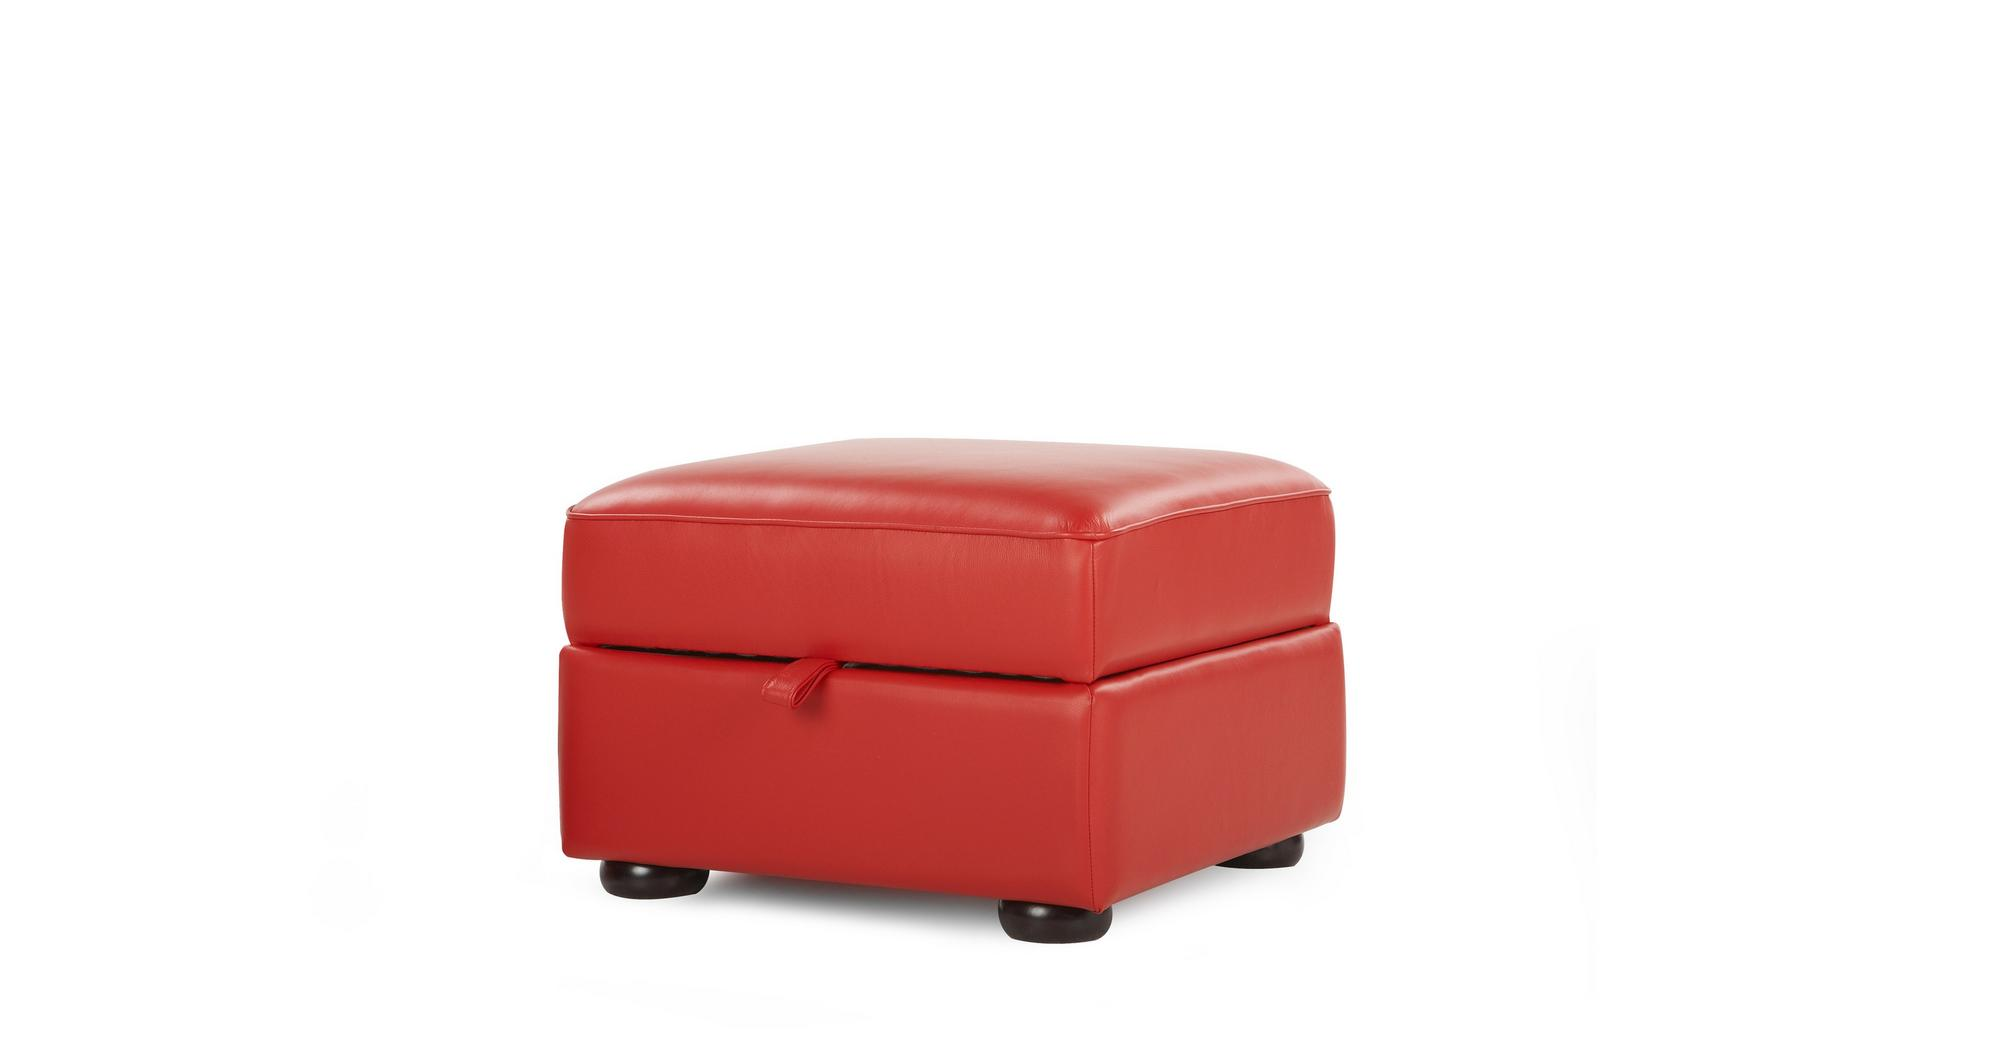 DFS Ritz Red Leather 2 Seater Sofabed Chair And Storage